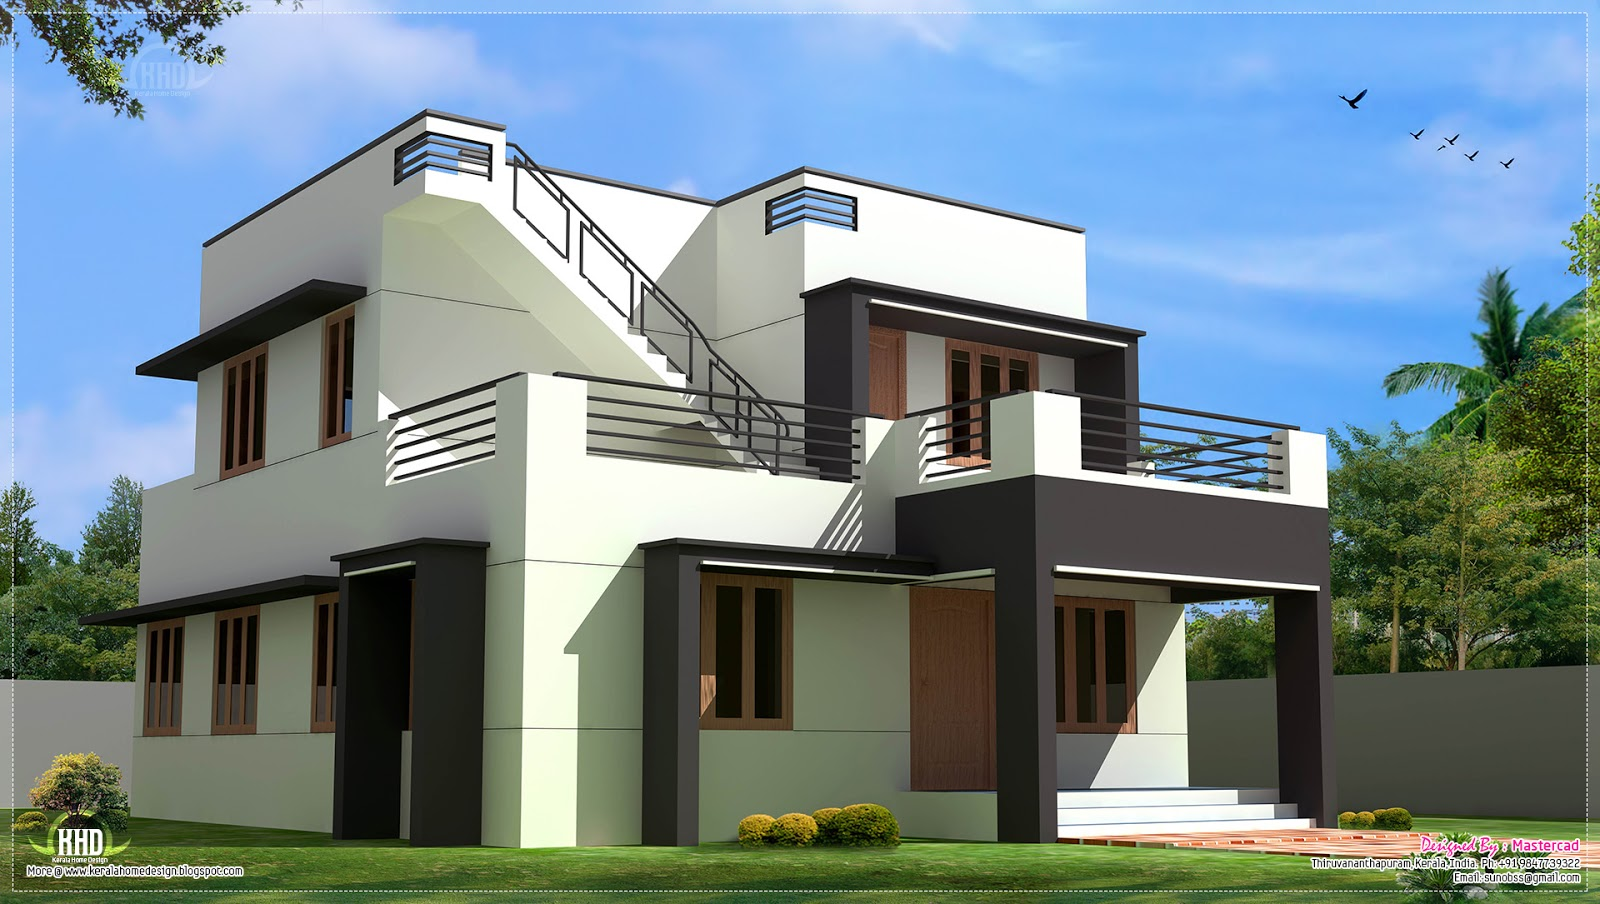 Modern house design in 1700 kerala home design for Best house design 2016